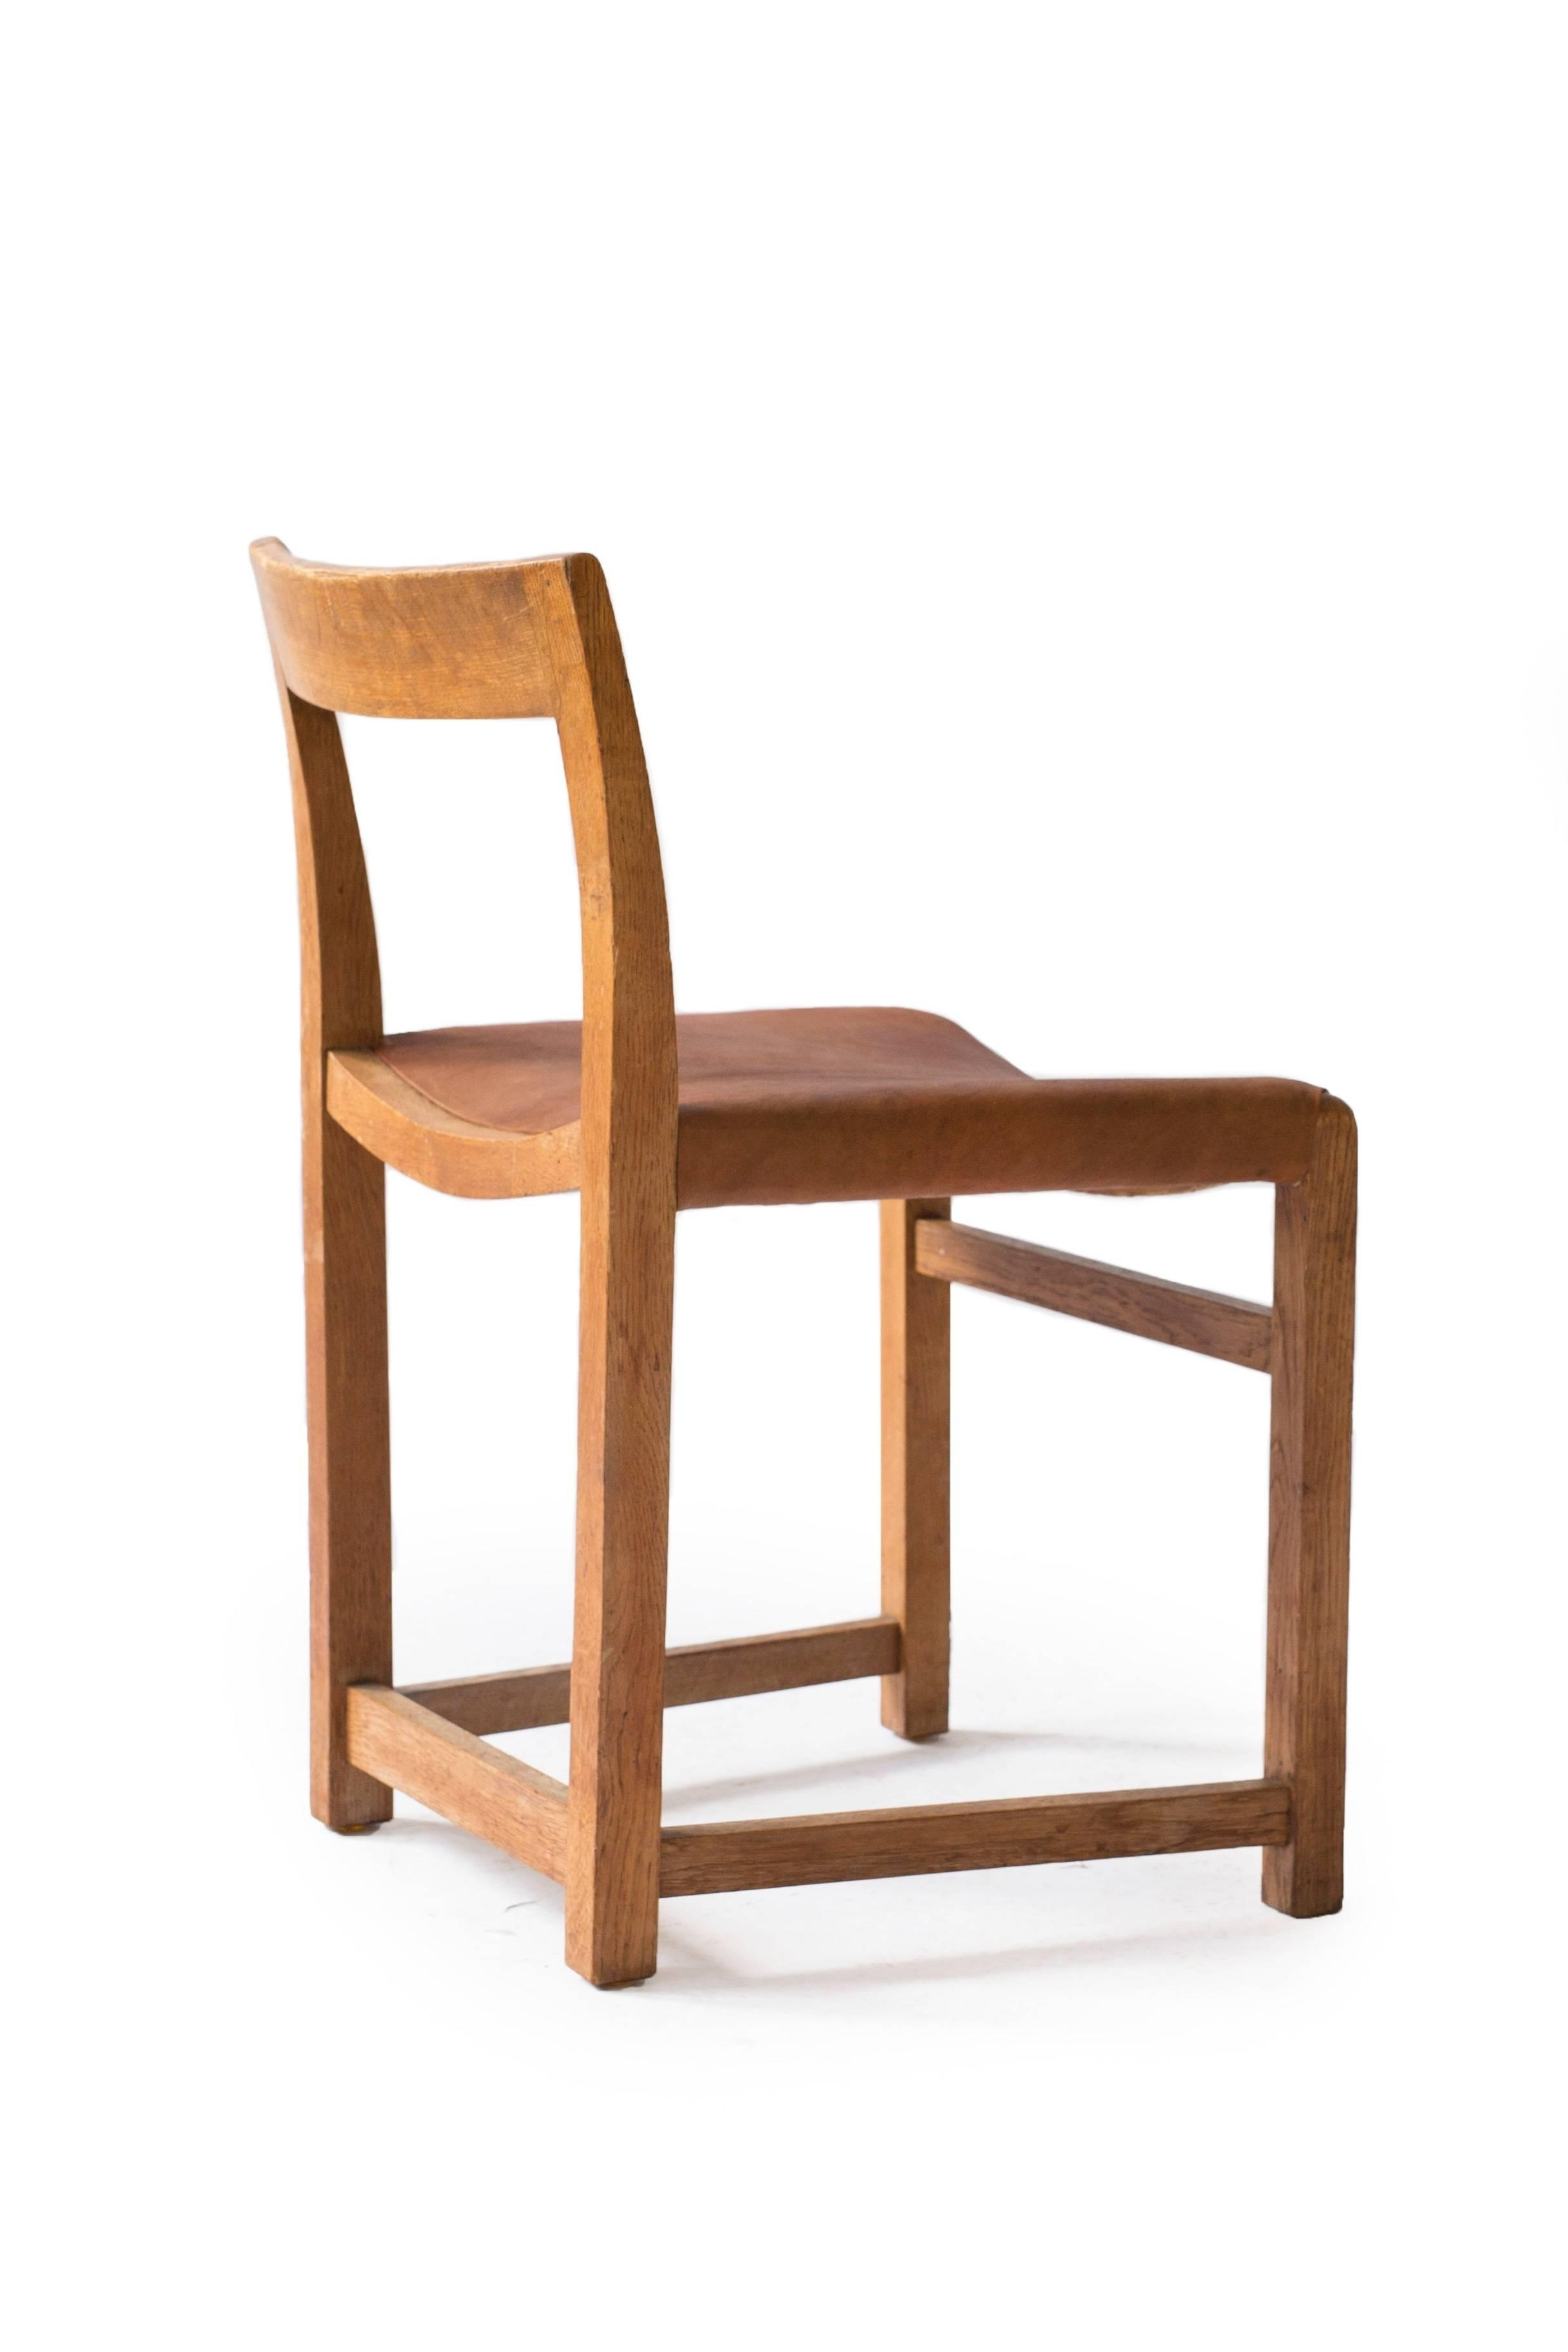 Latest Rare Mogens Lassen Oak Side Chair, 1934 At 1stdibs With Regard To Lassen Side Chairs (View 2 of 20)